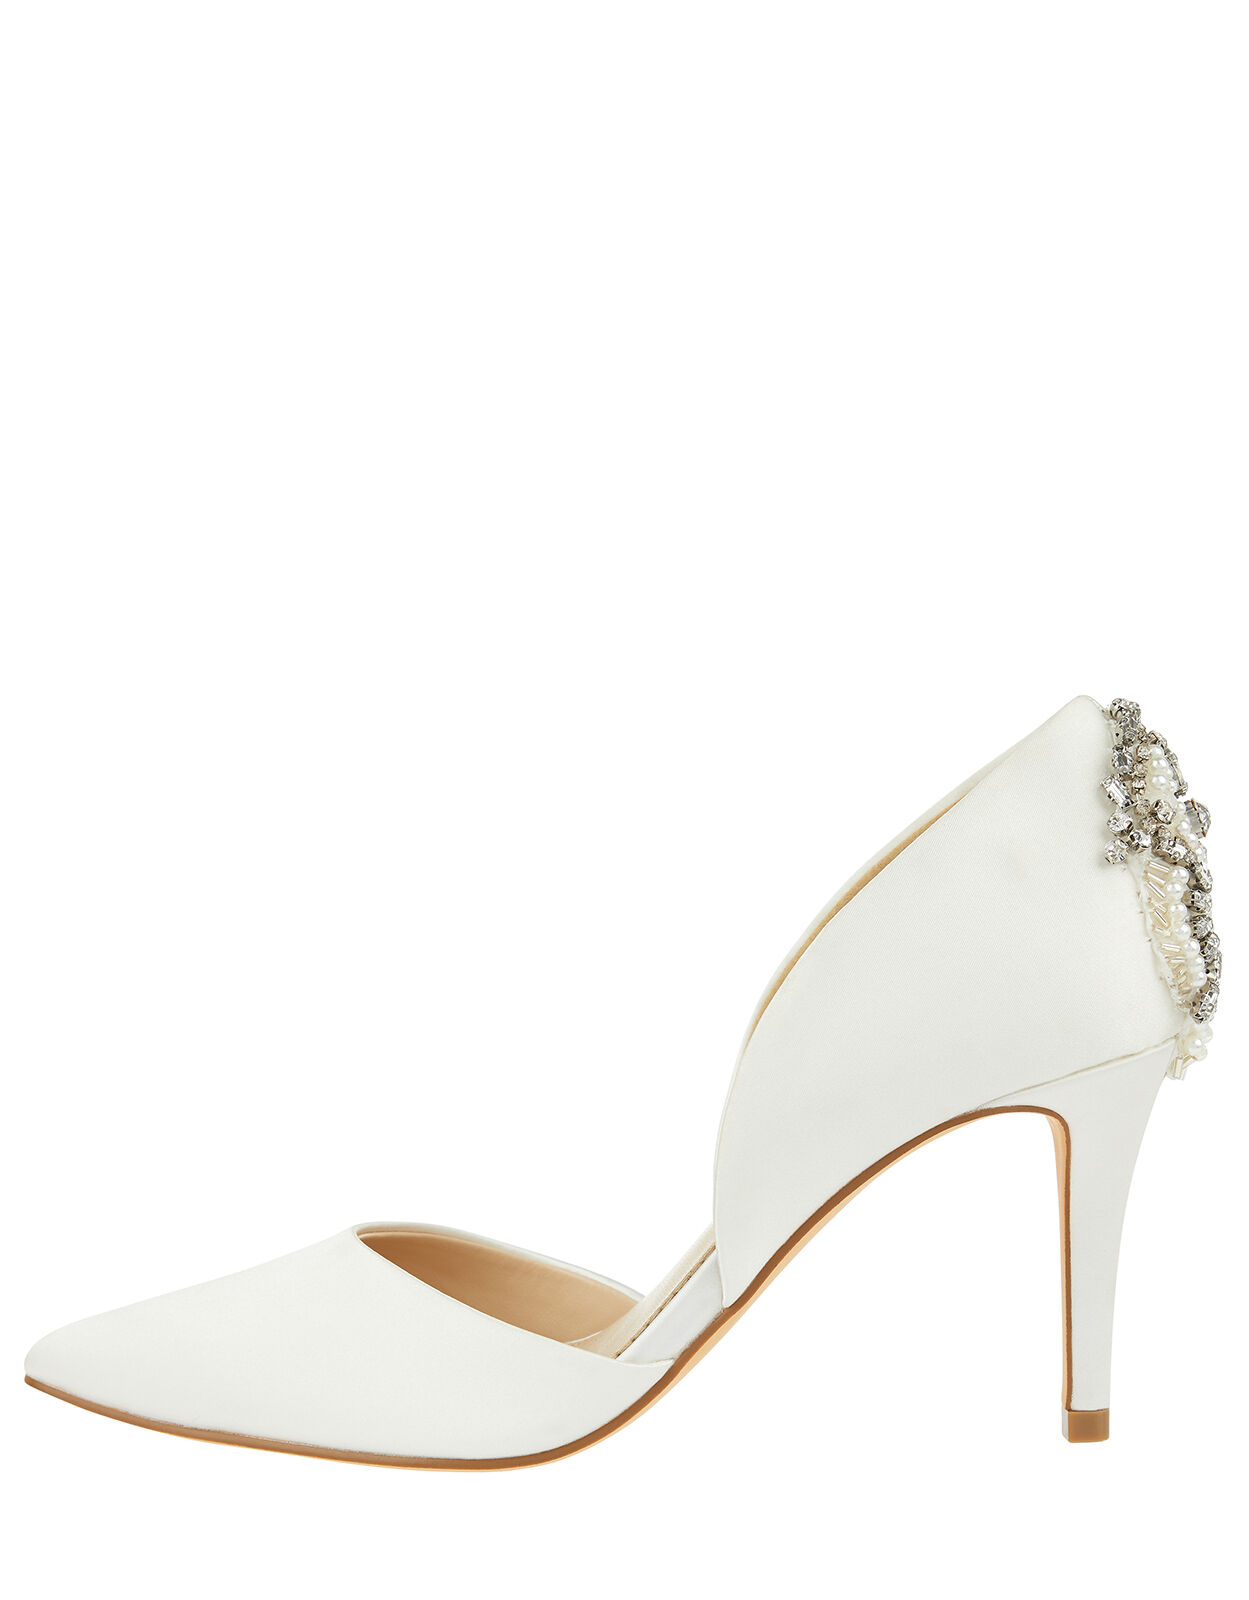 Evie Satin Bridal Court Shoes with